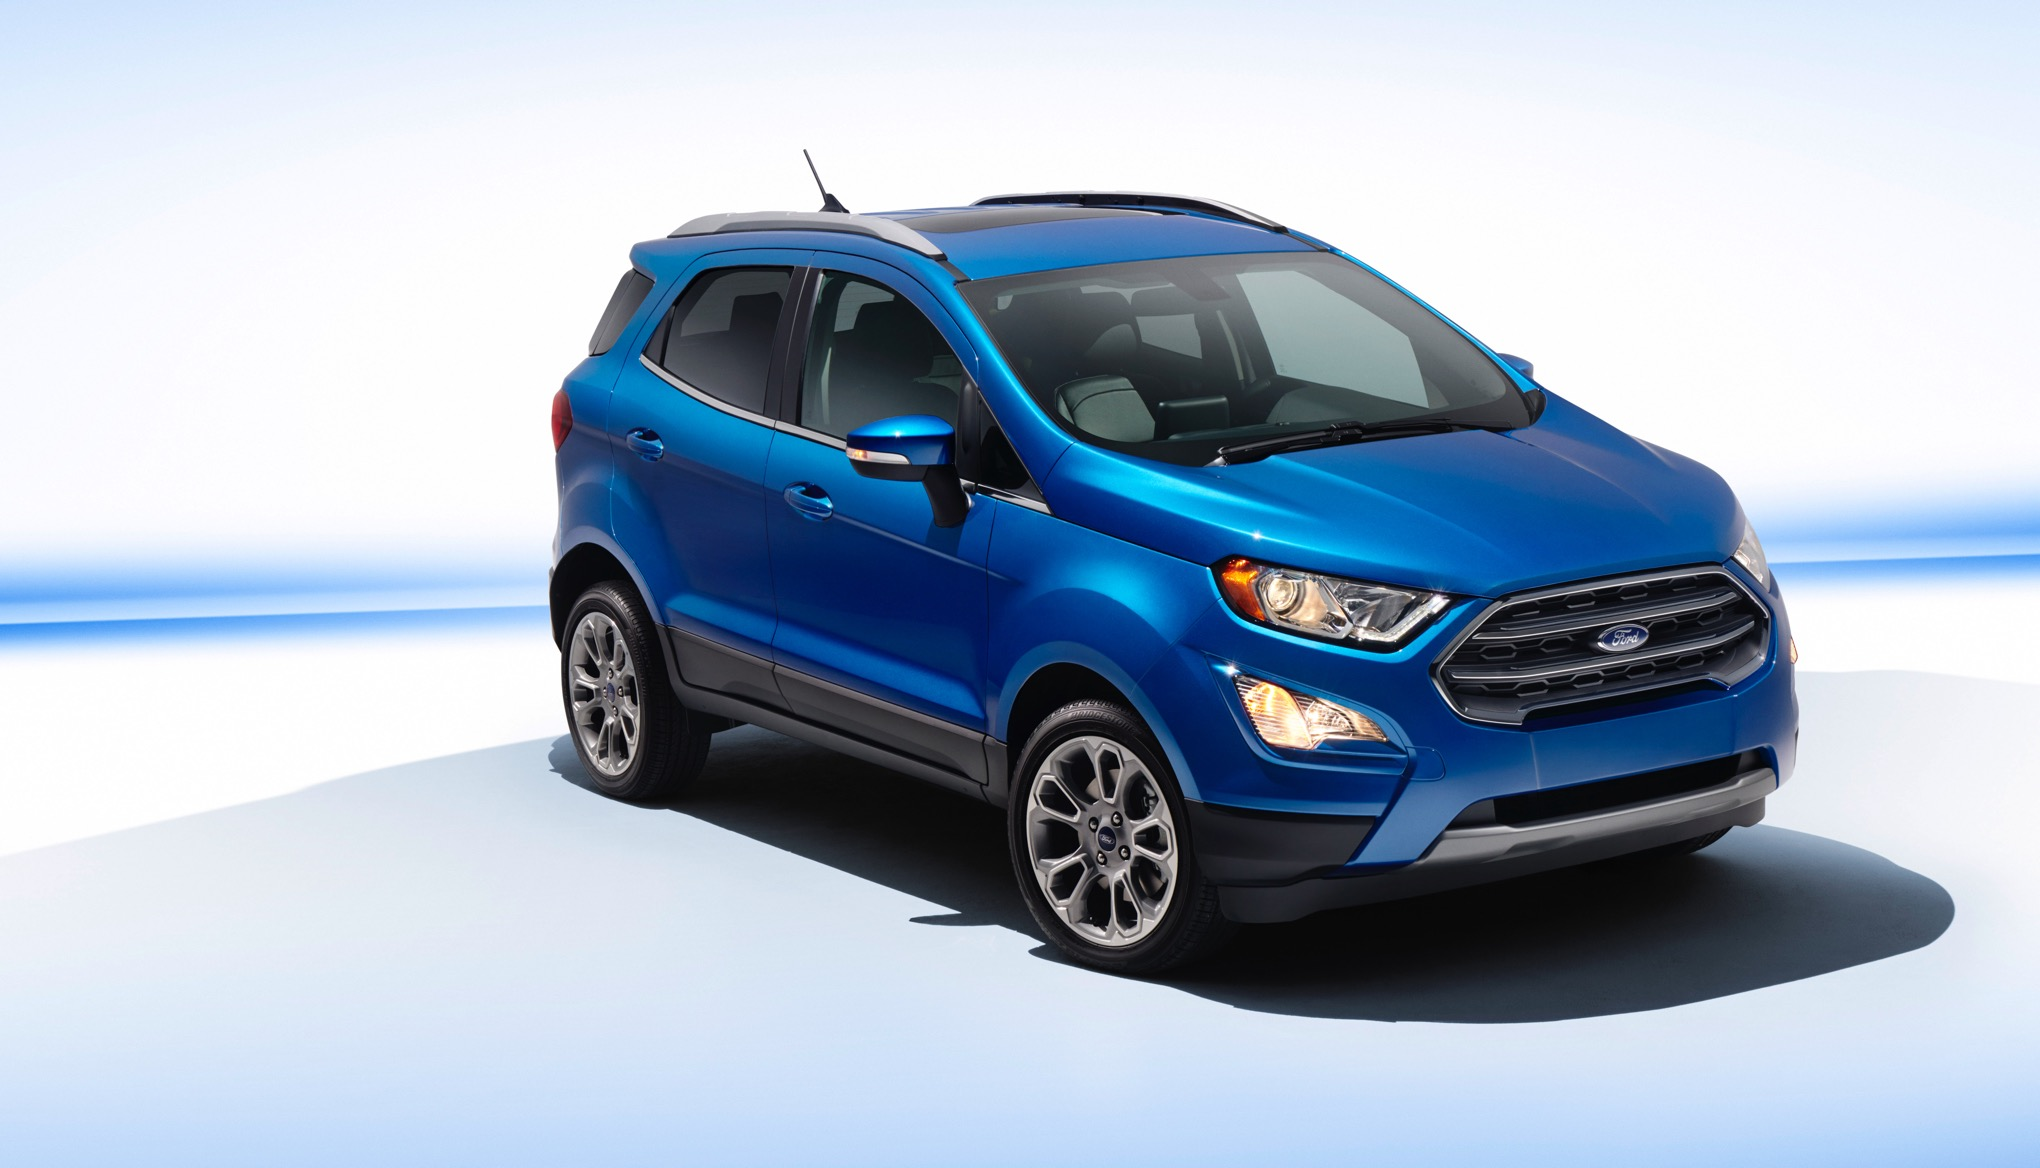 Image Result For Ford Ecosport Jordan